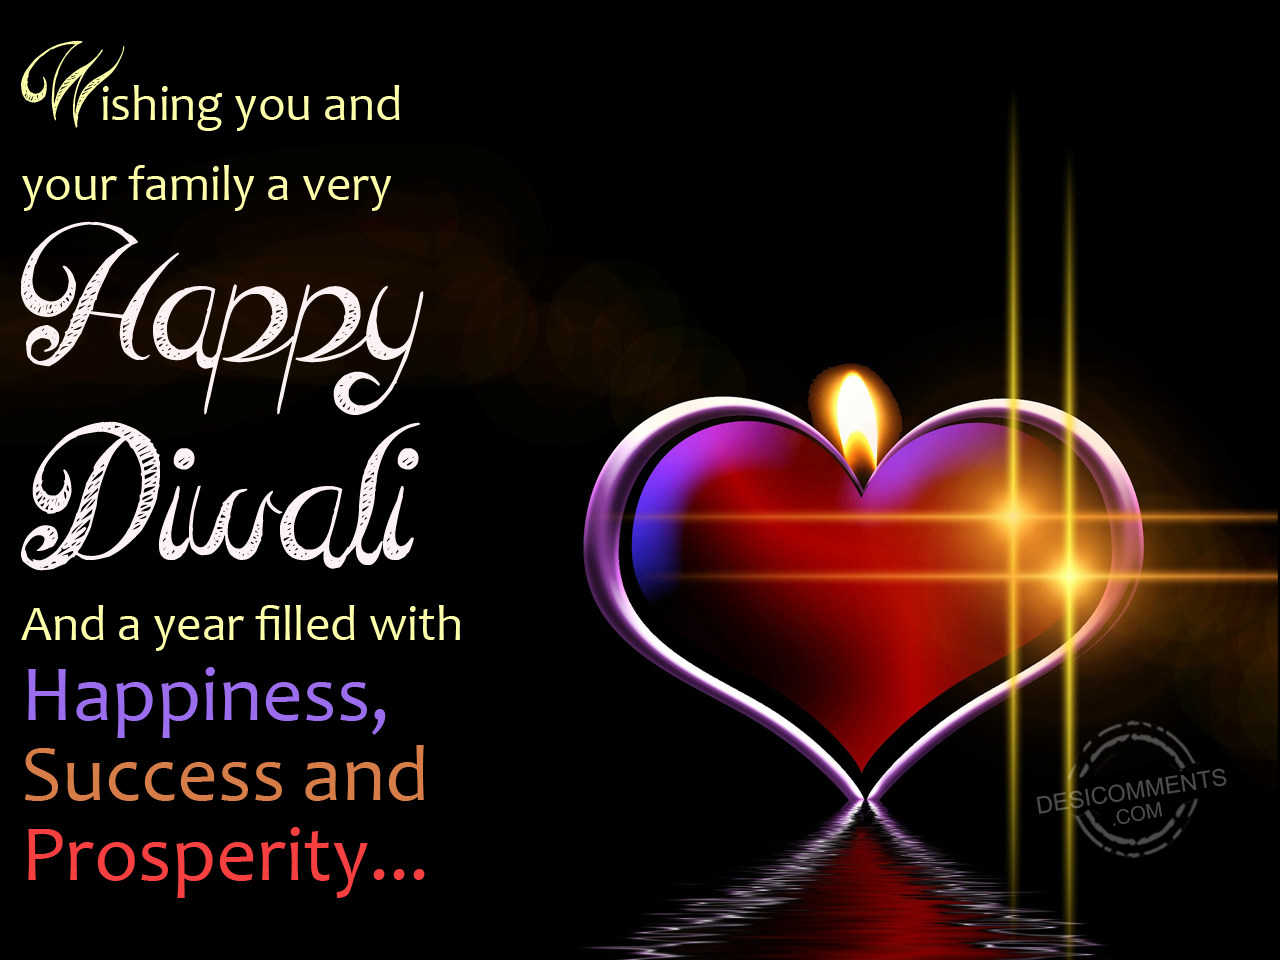 Download Wallpaper Love Diwali - Wishing-you-and-your-family-a-very-happy-diwali  Picture_67726.jpg